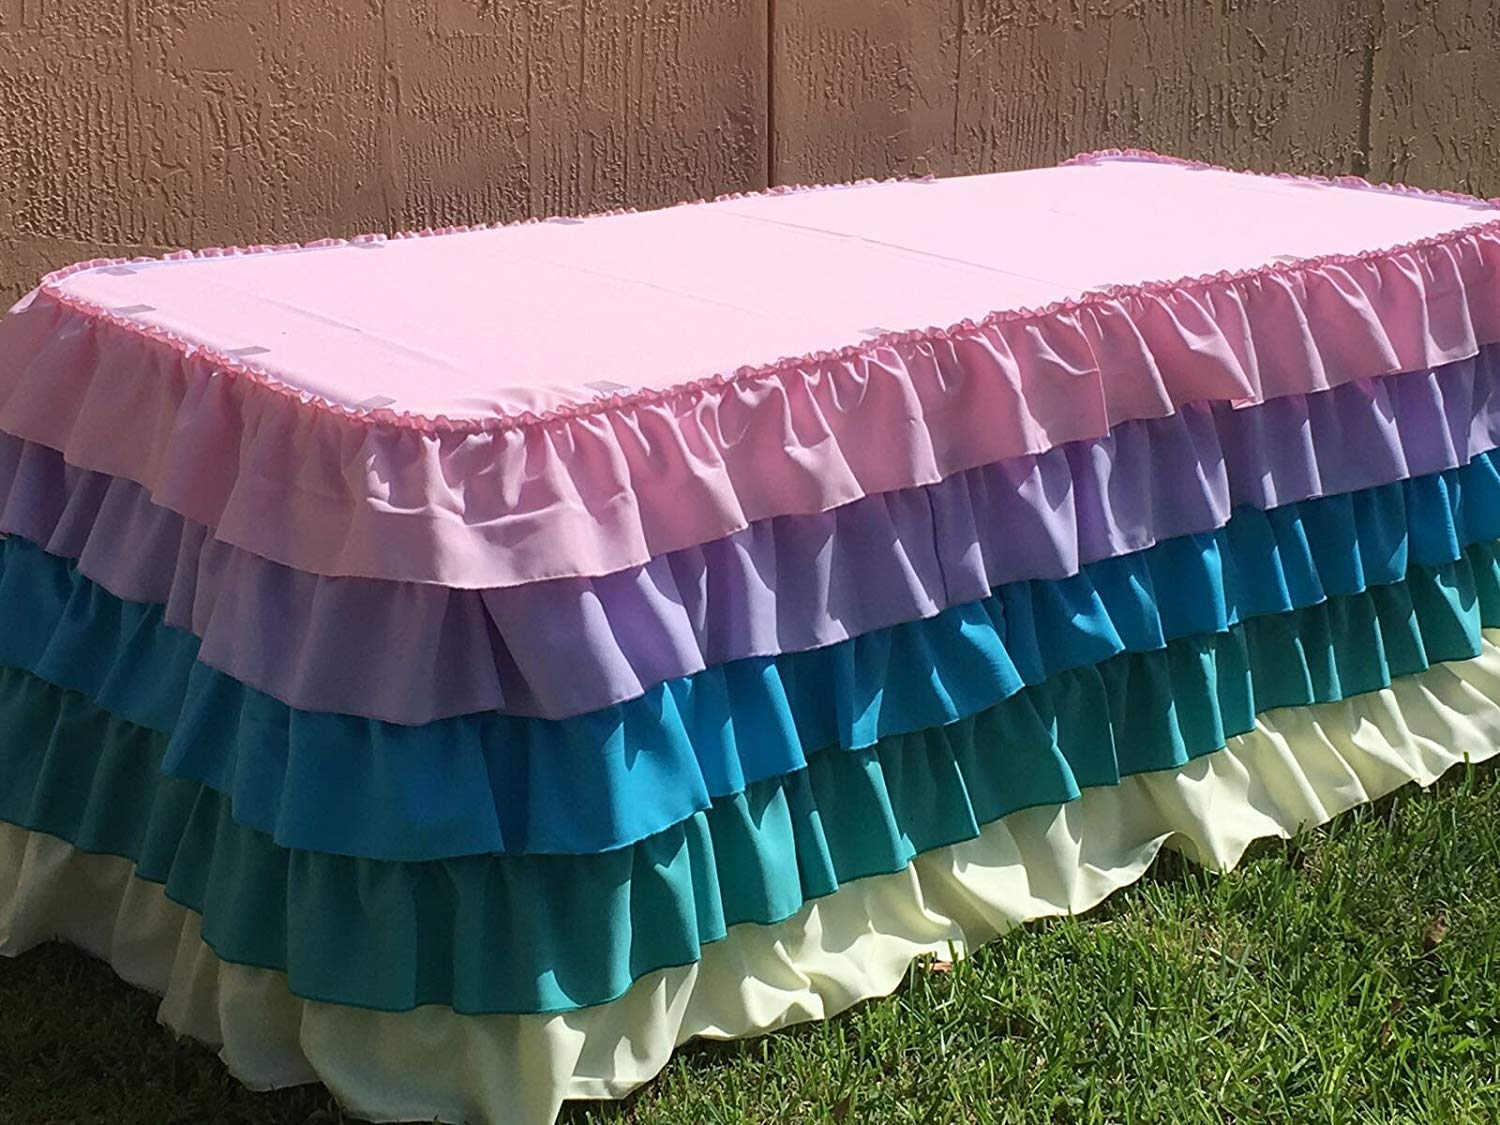 ADD&SHIP 5 Tier Ruffled Polyester Table Skirt | Very Elegant & Durable Table Skirt| Perfect for Birthdays, Classic Events and Others | (Unicorn, 21 Ft)